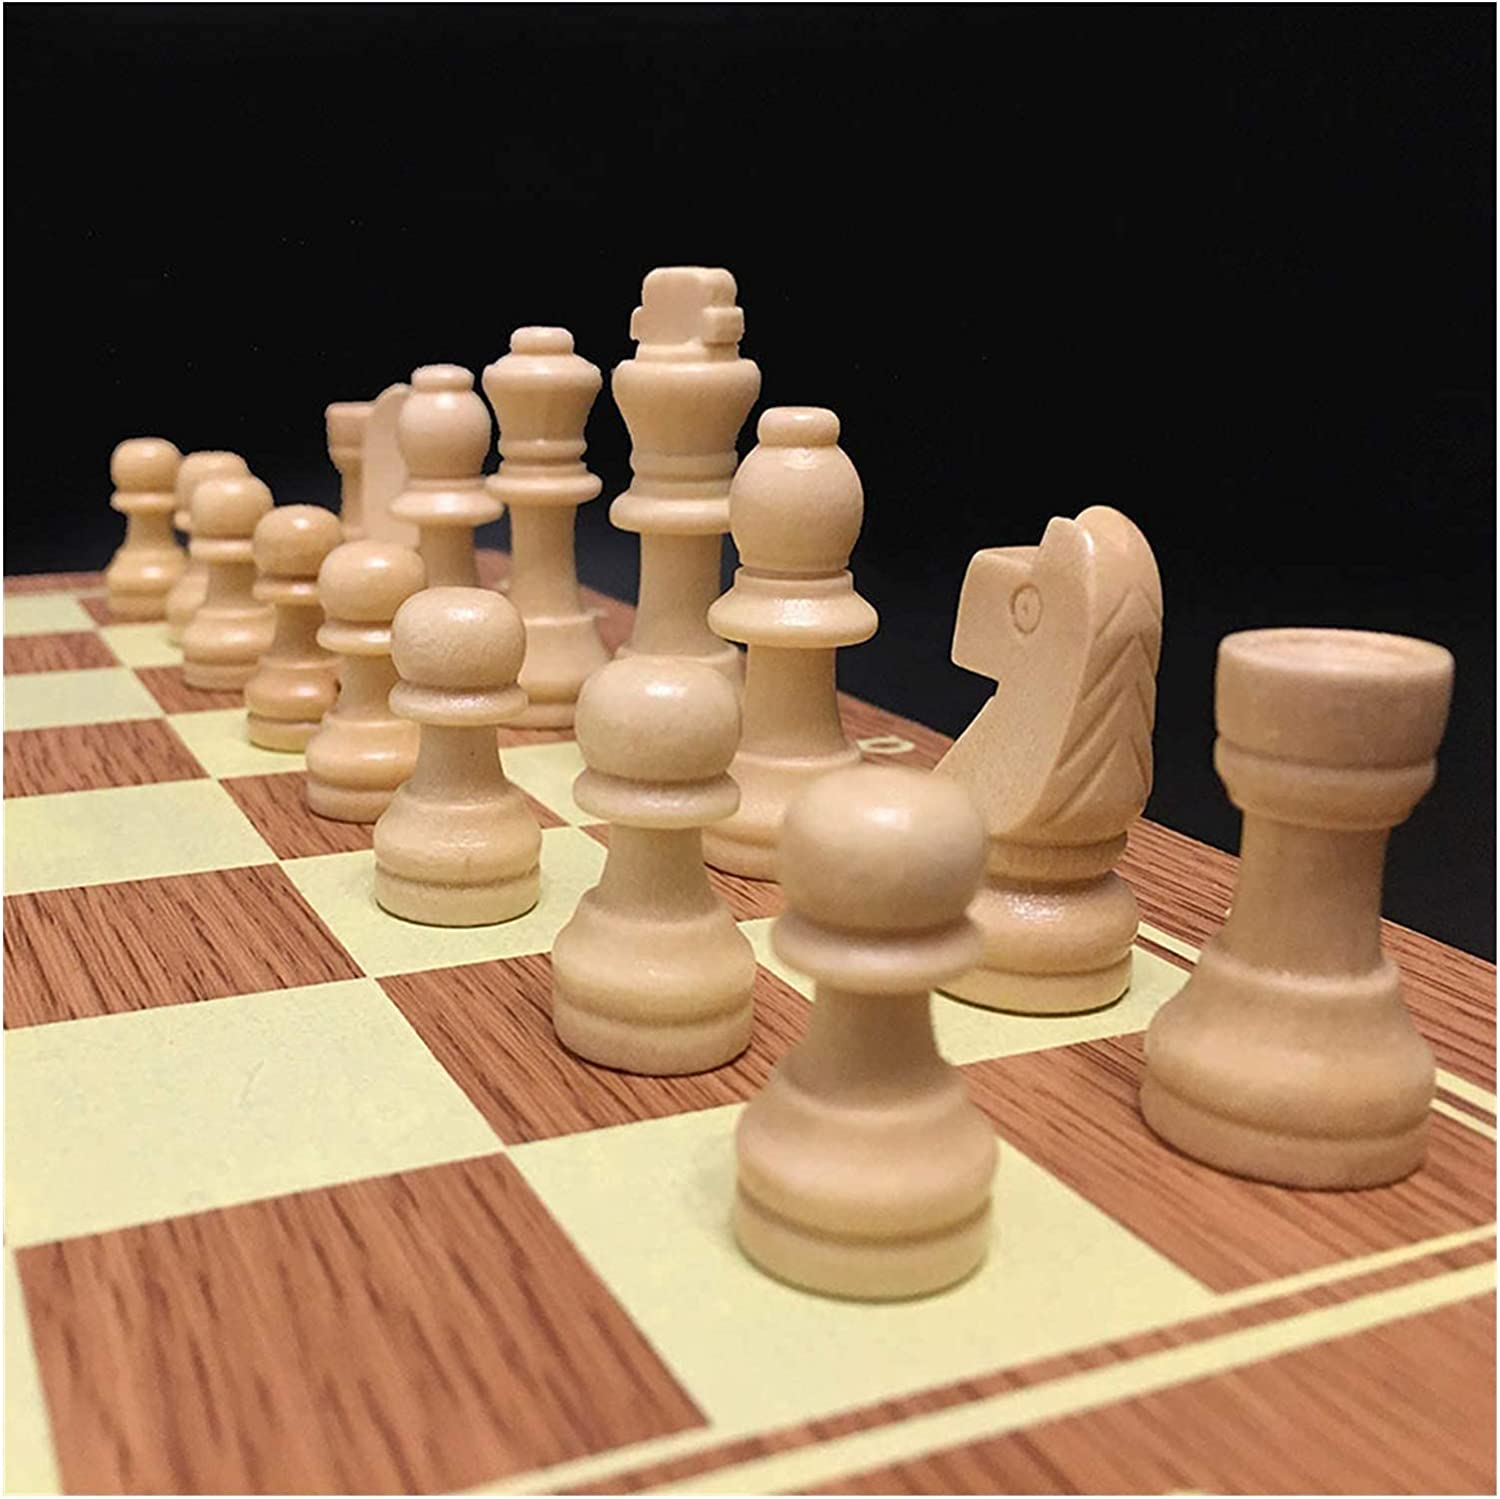 ZHZHUANG Chess Set Sets Sale SALE% OFF for Kansas City Mall Adults Wooden Che Storage with